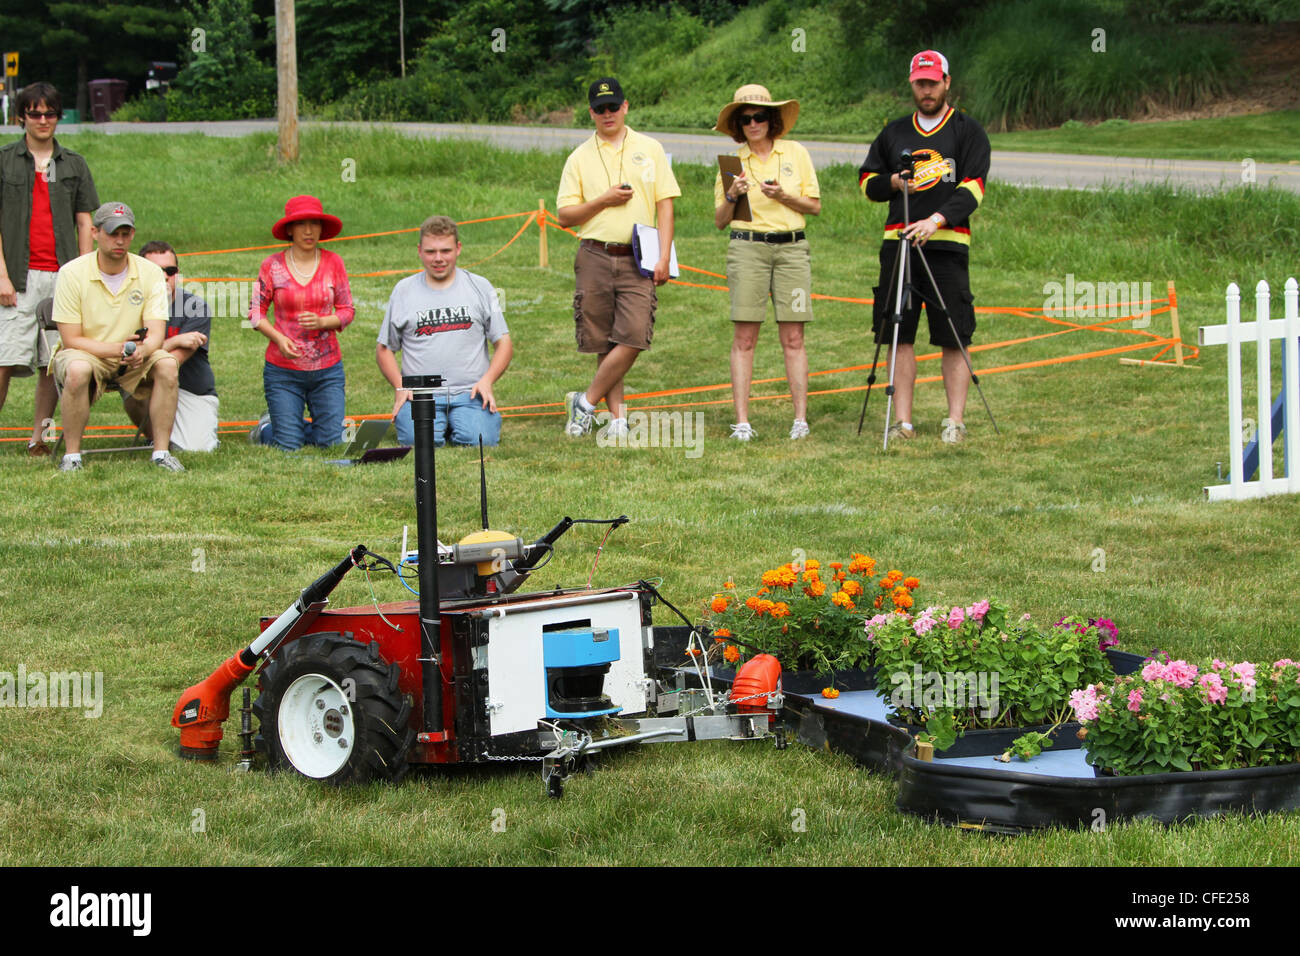 Experimental Robotic Lawn Mower by team Miami University. - Stock Image